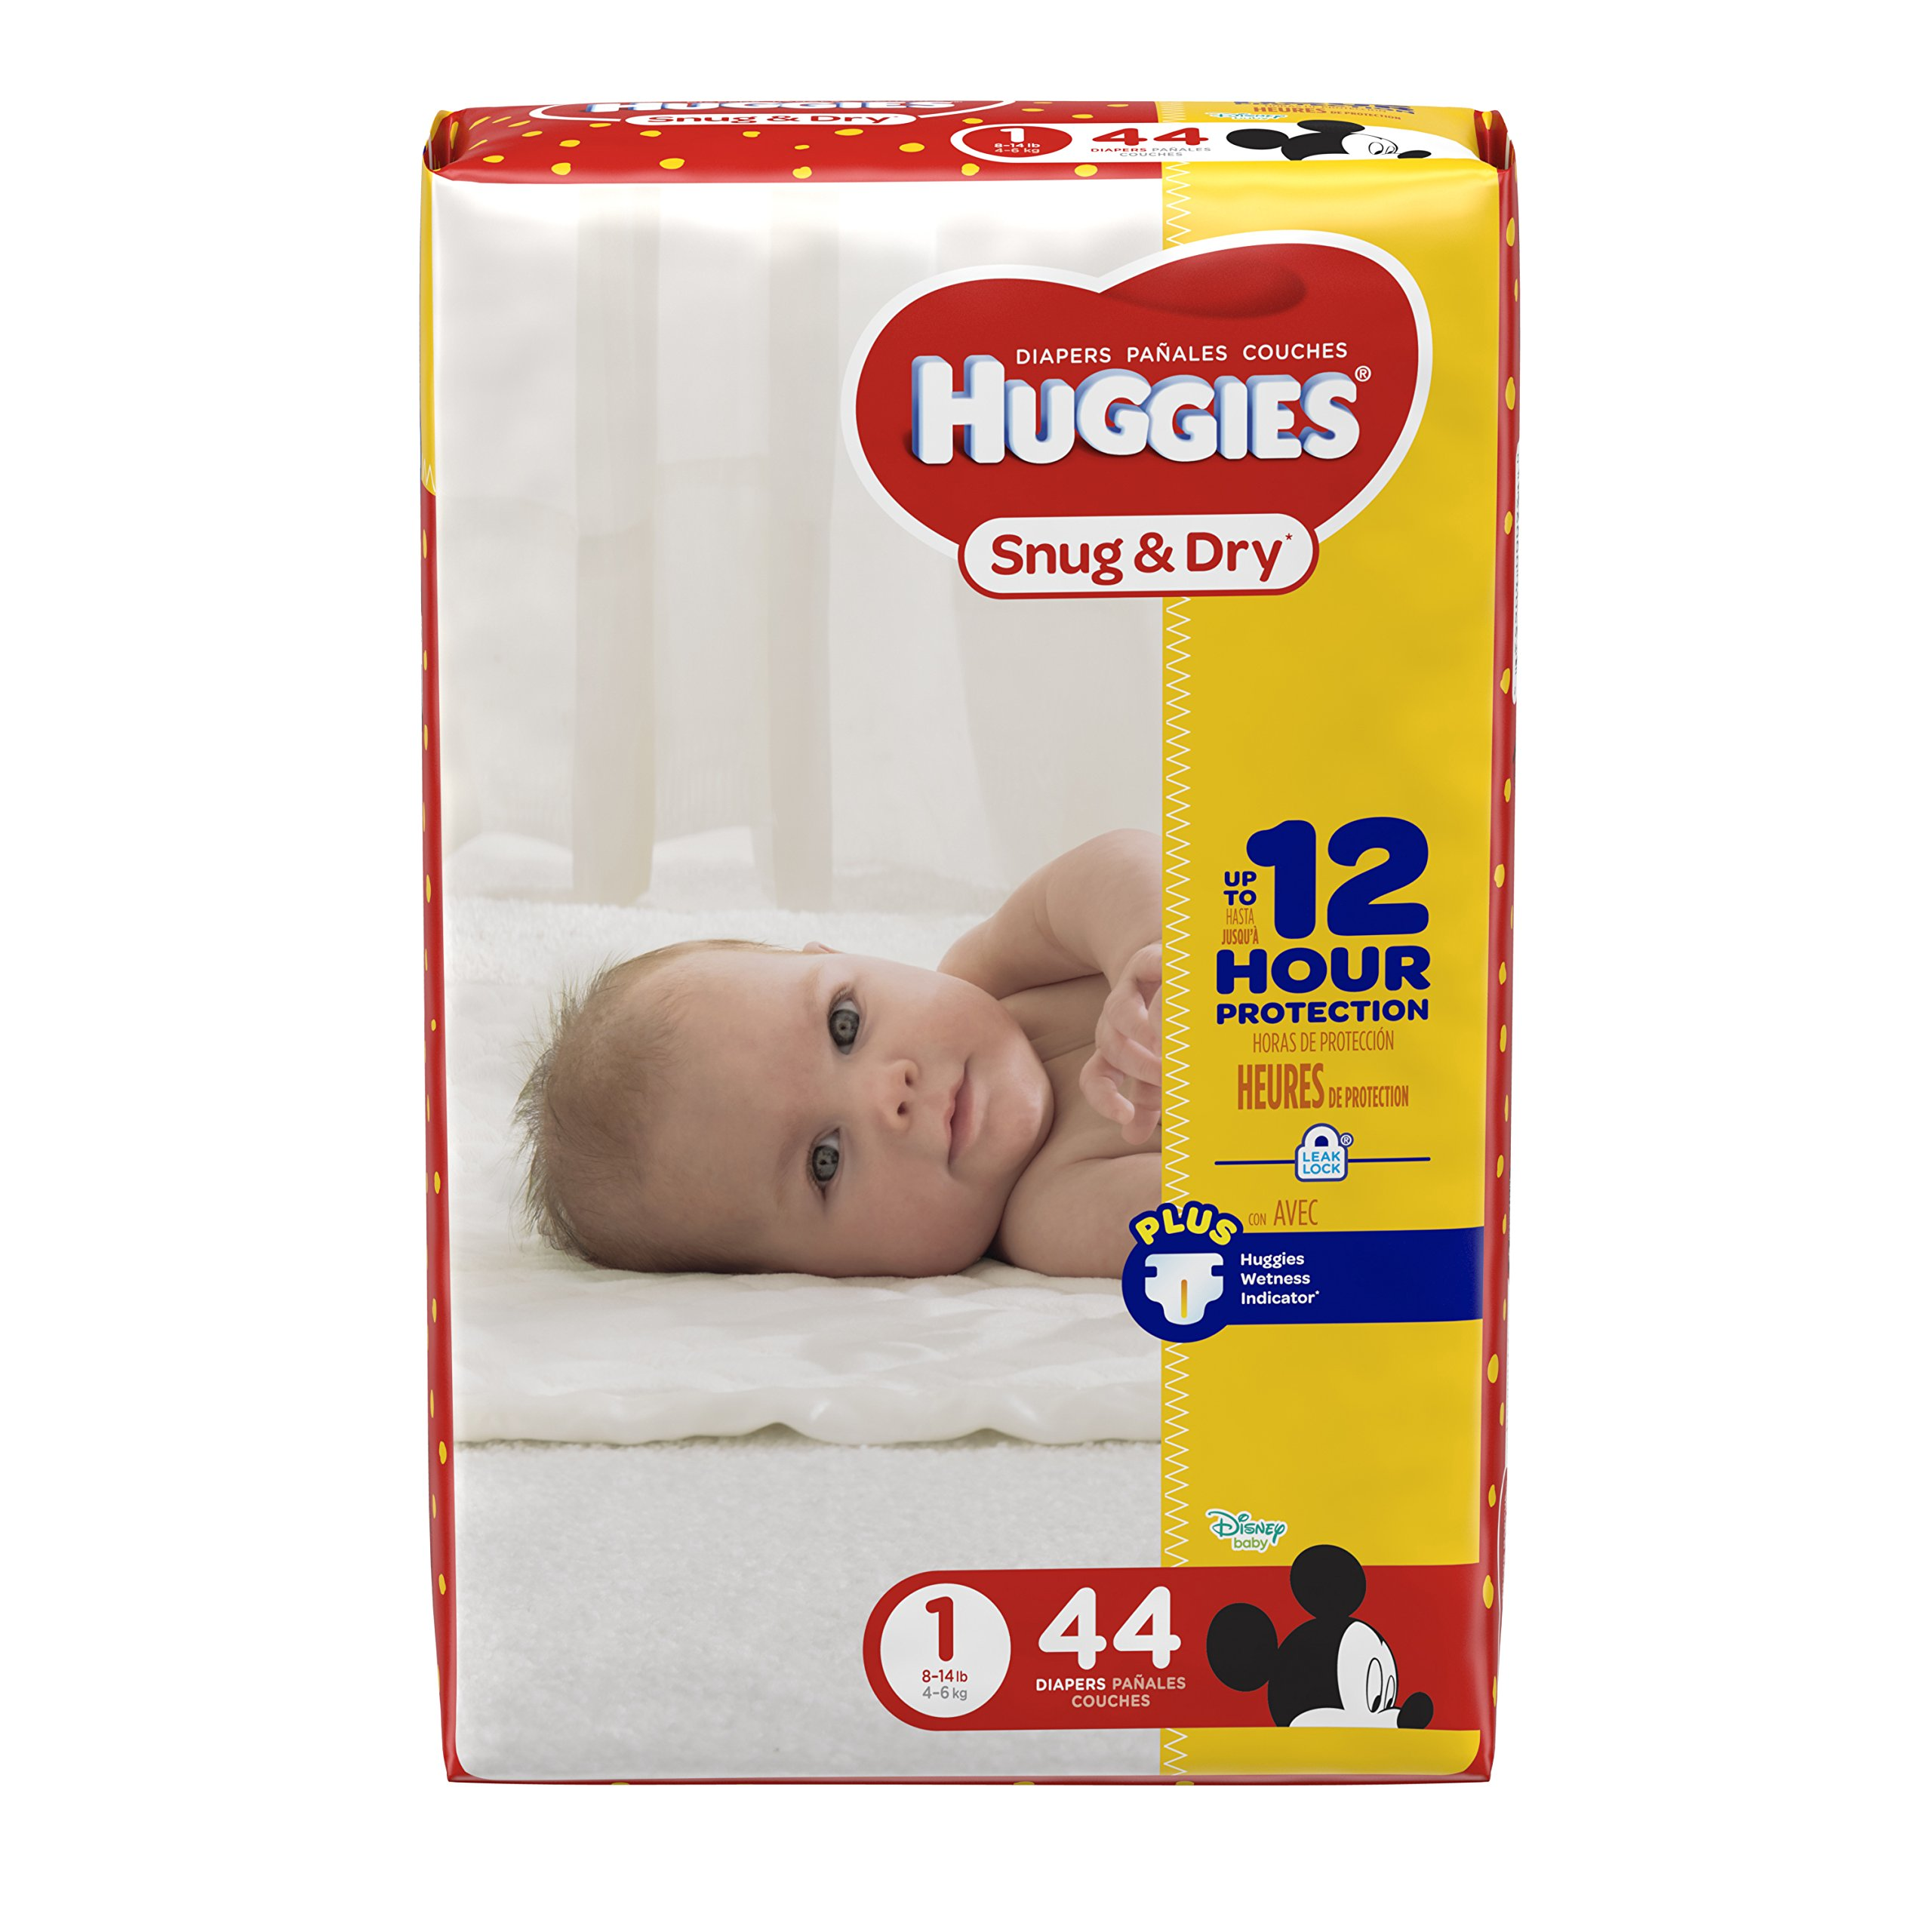 HUGGIES Snug & Dry Diapers, Size 1, 44 Count, JUMBO PACK (Packaging